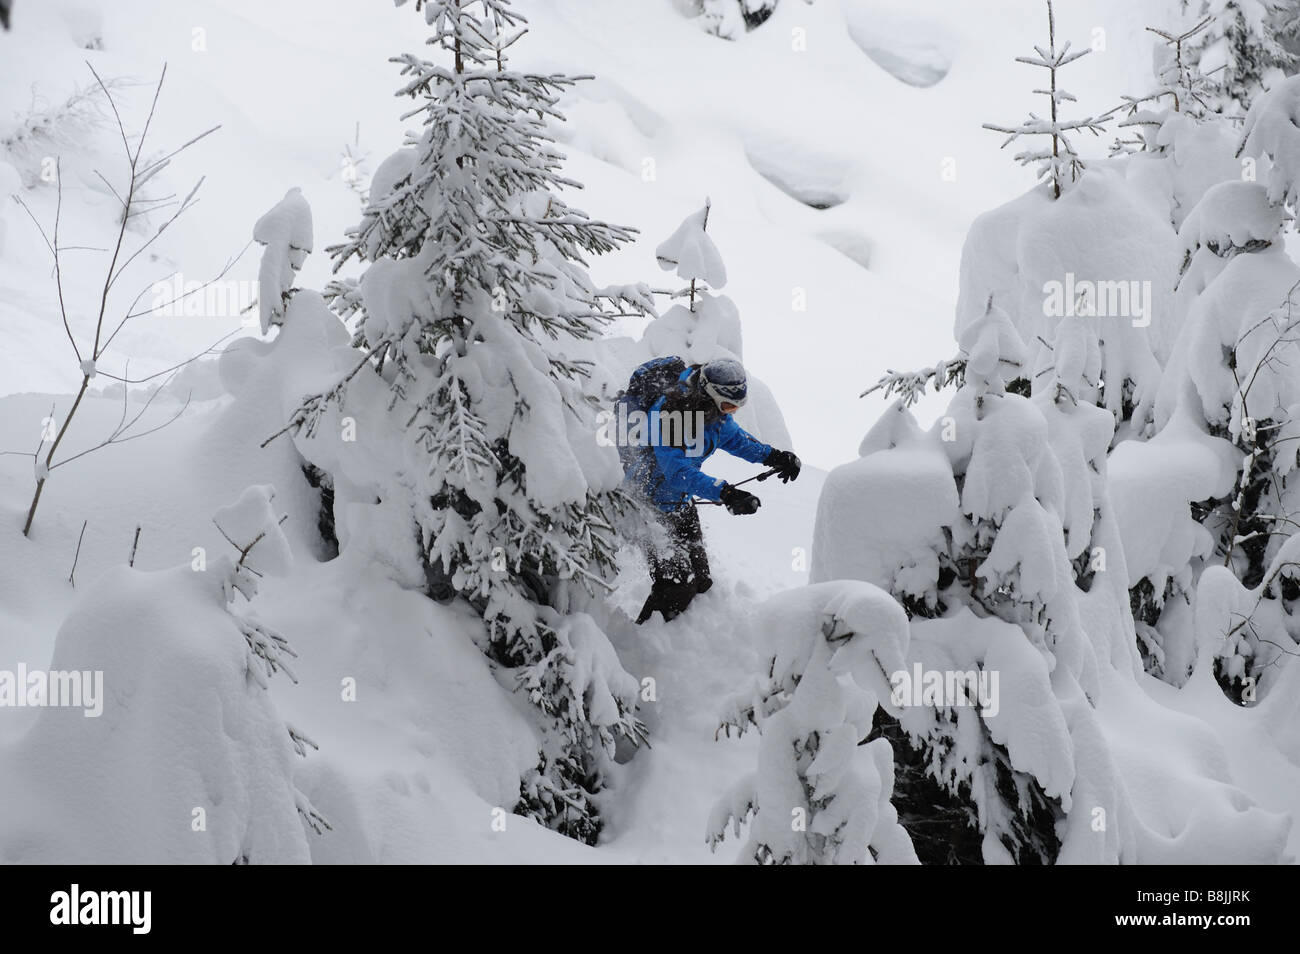 In between snow covered trees - Stock Image